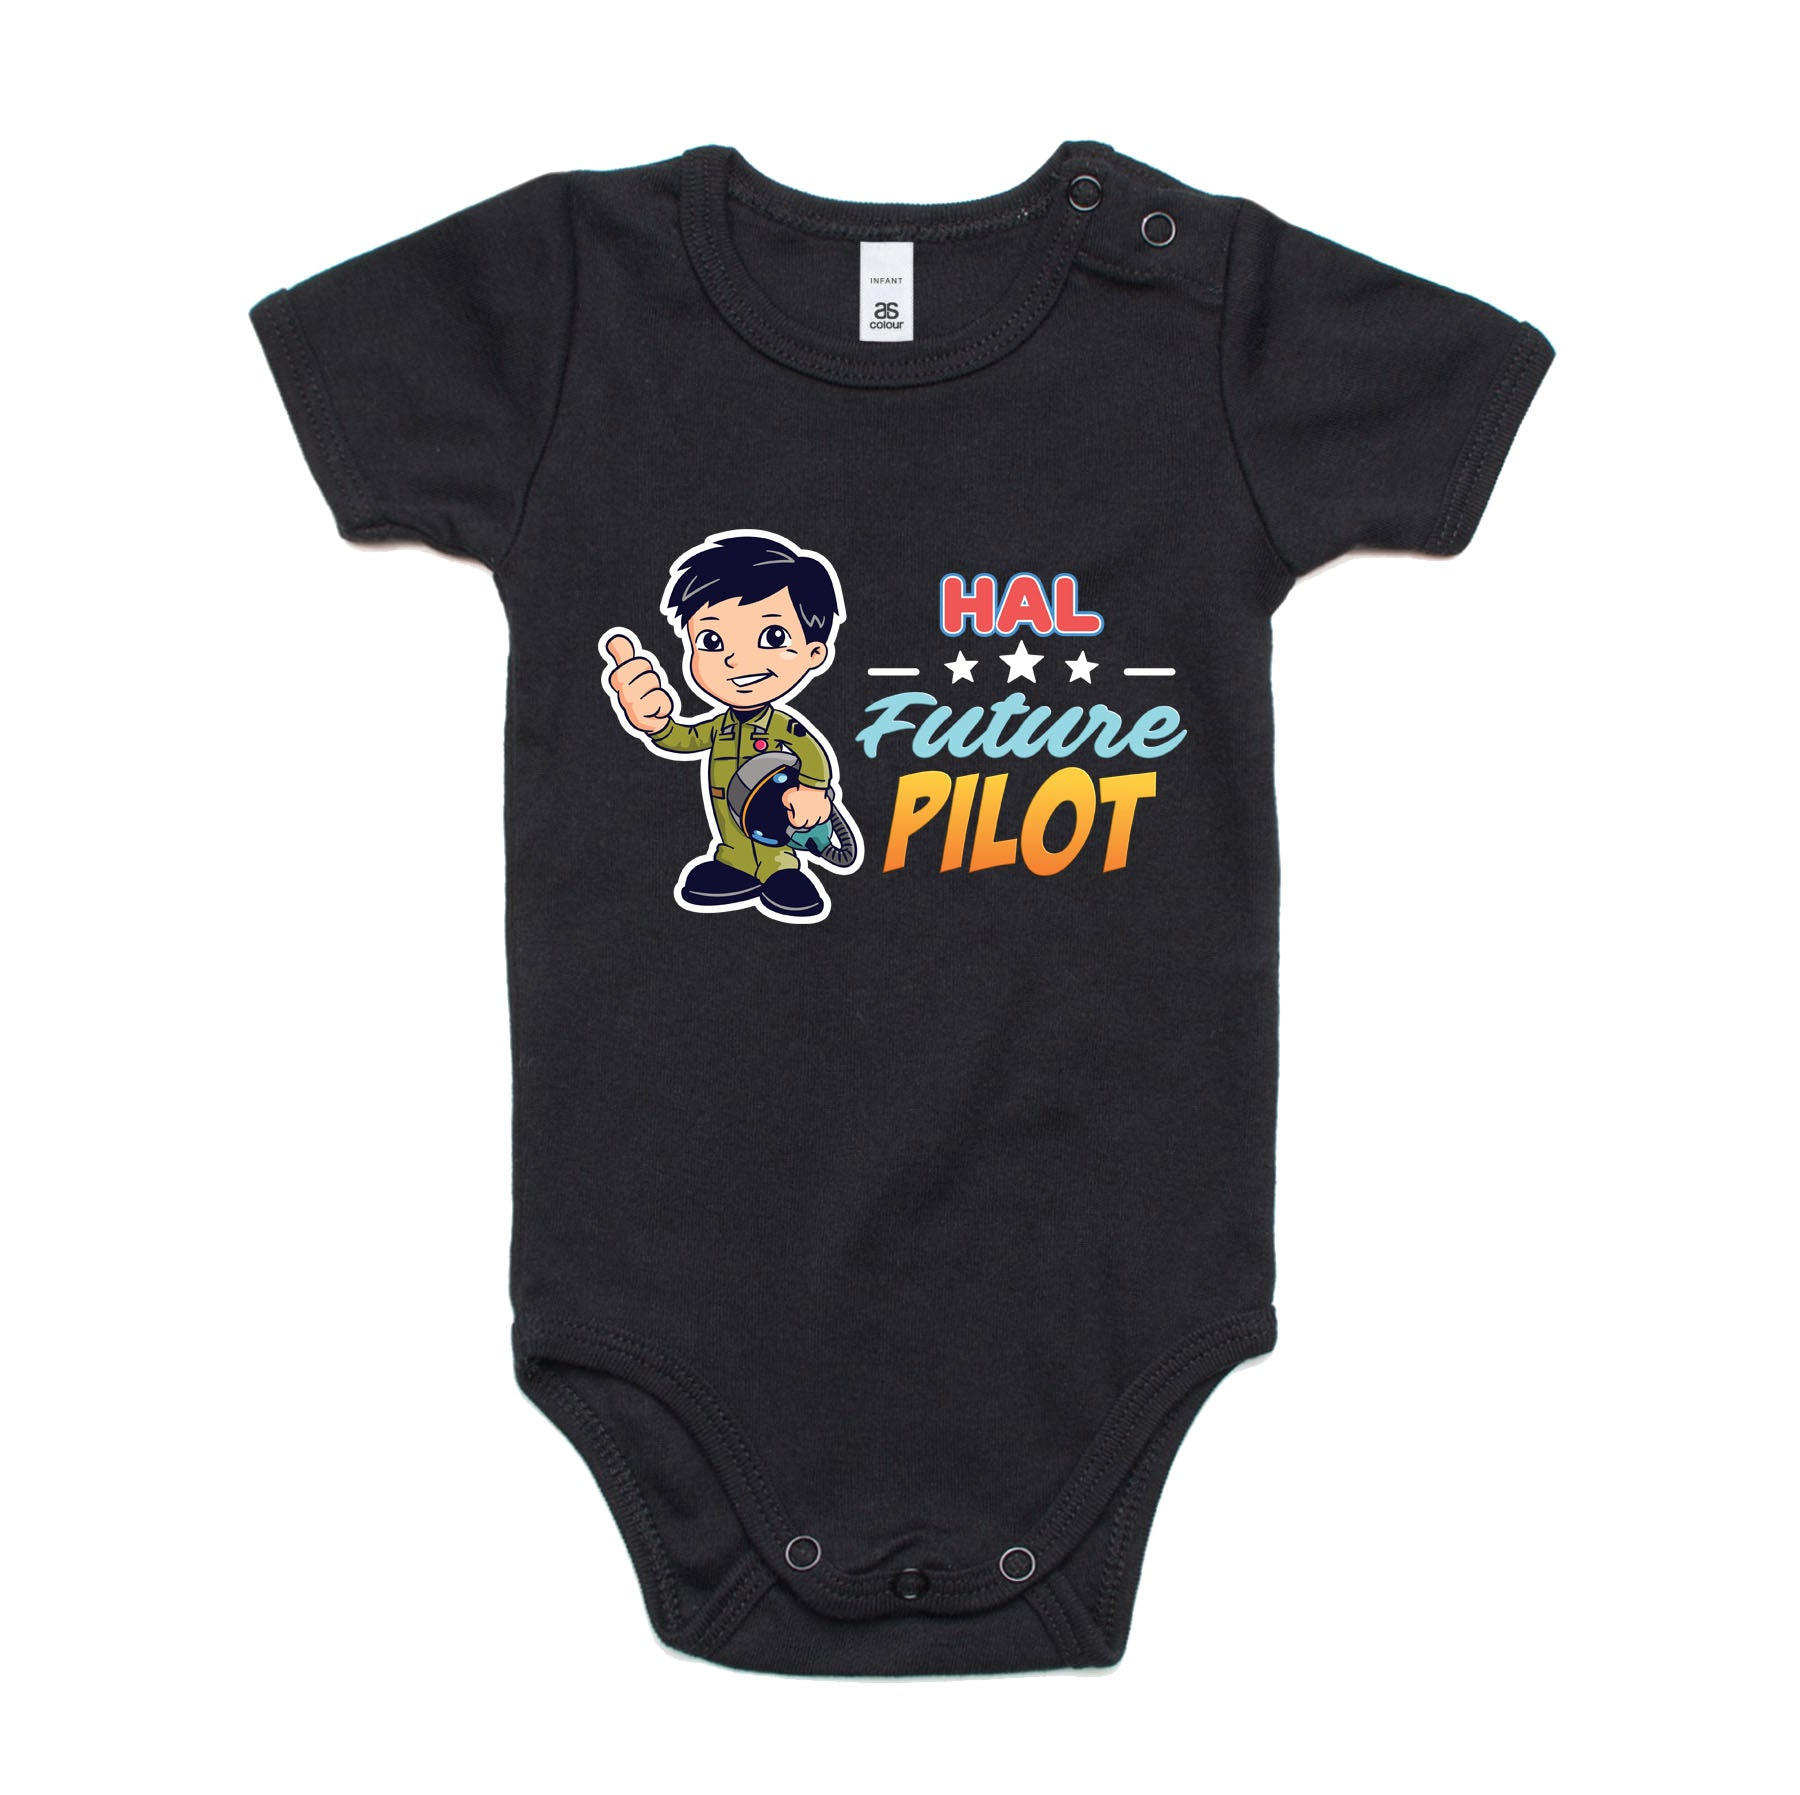 Personalised Baby Onesies - Future Pilot